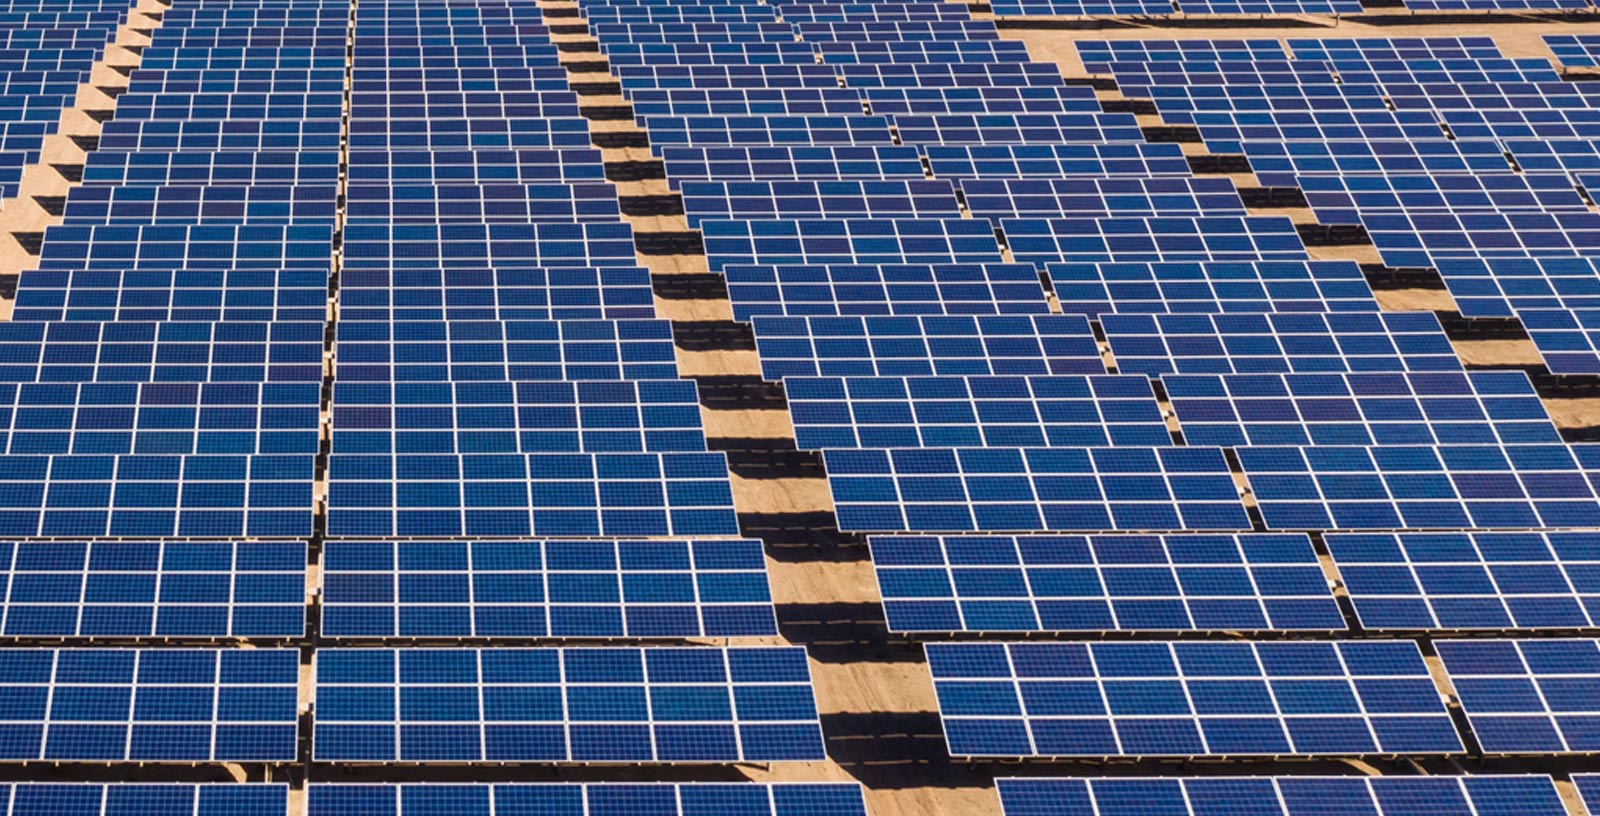 Detailed Engineering_2x2MW Solar PV PP in California_GES USA_IDOM